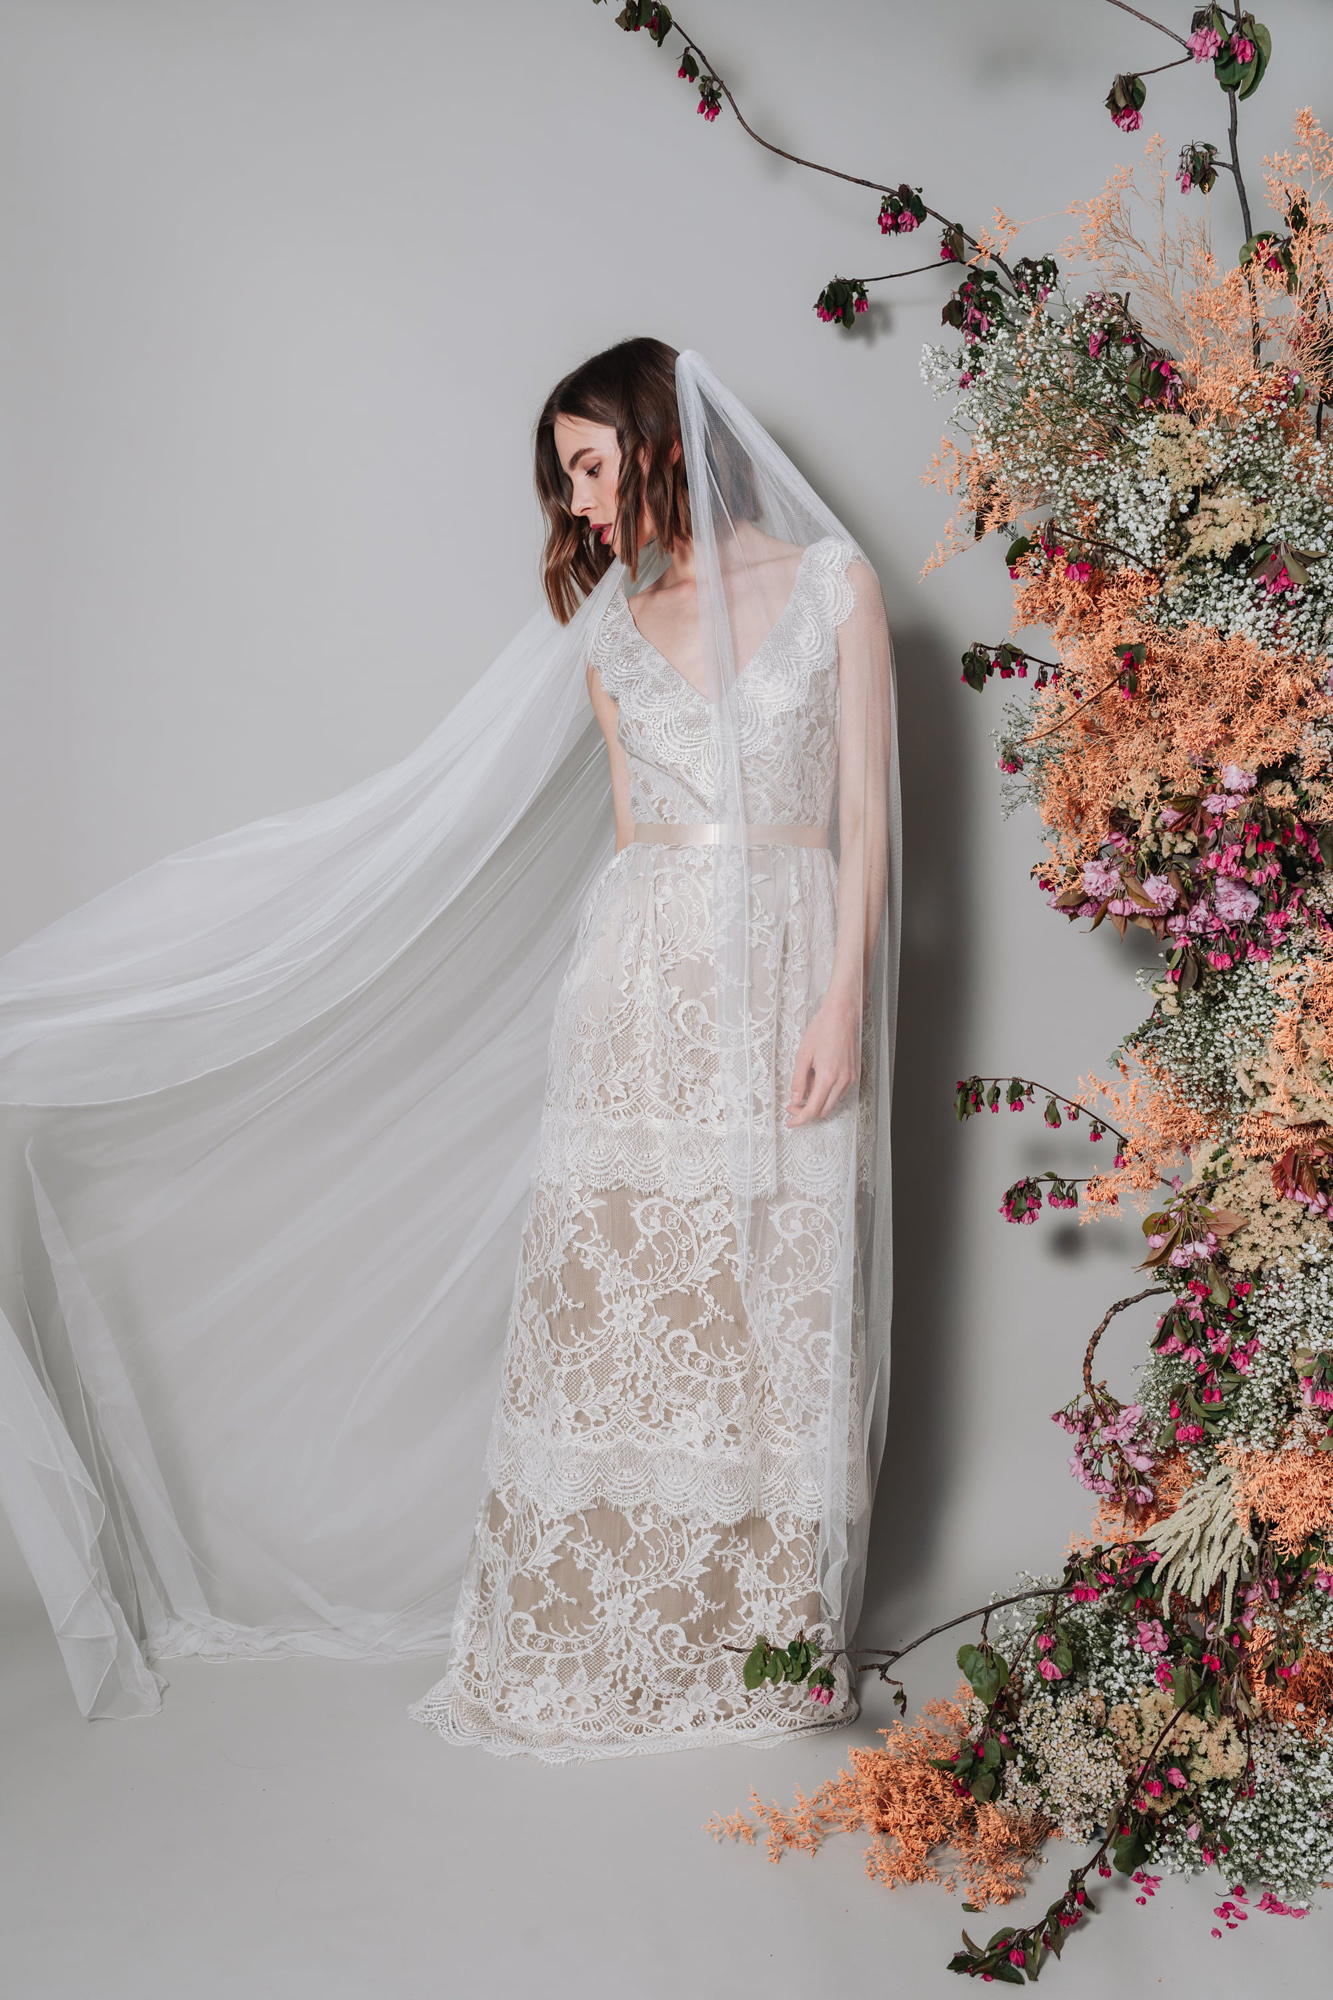 Kate-Beaumont-Sheffield-Wild-Lupin-Bohemian-Lace-Wedding-Gown-Tiered-Skirt-14.jpg